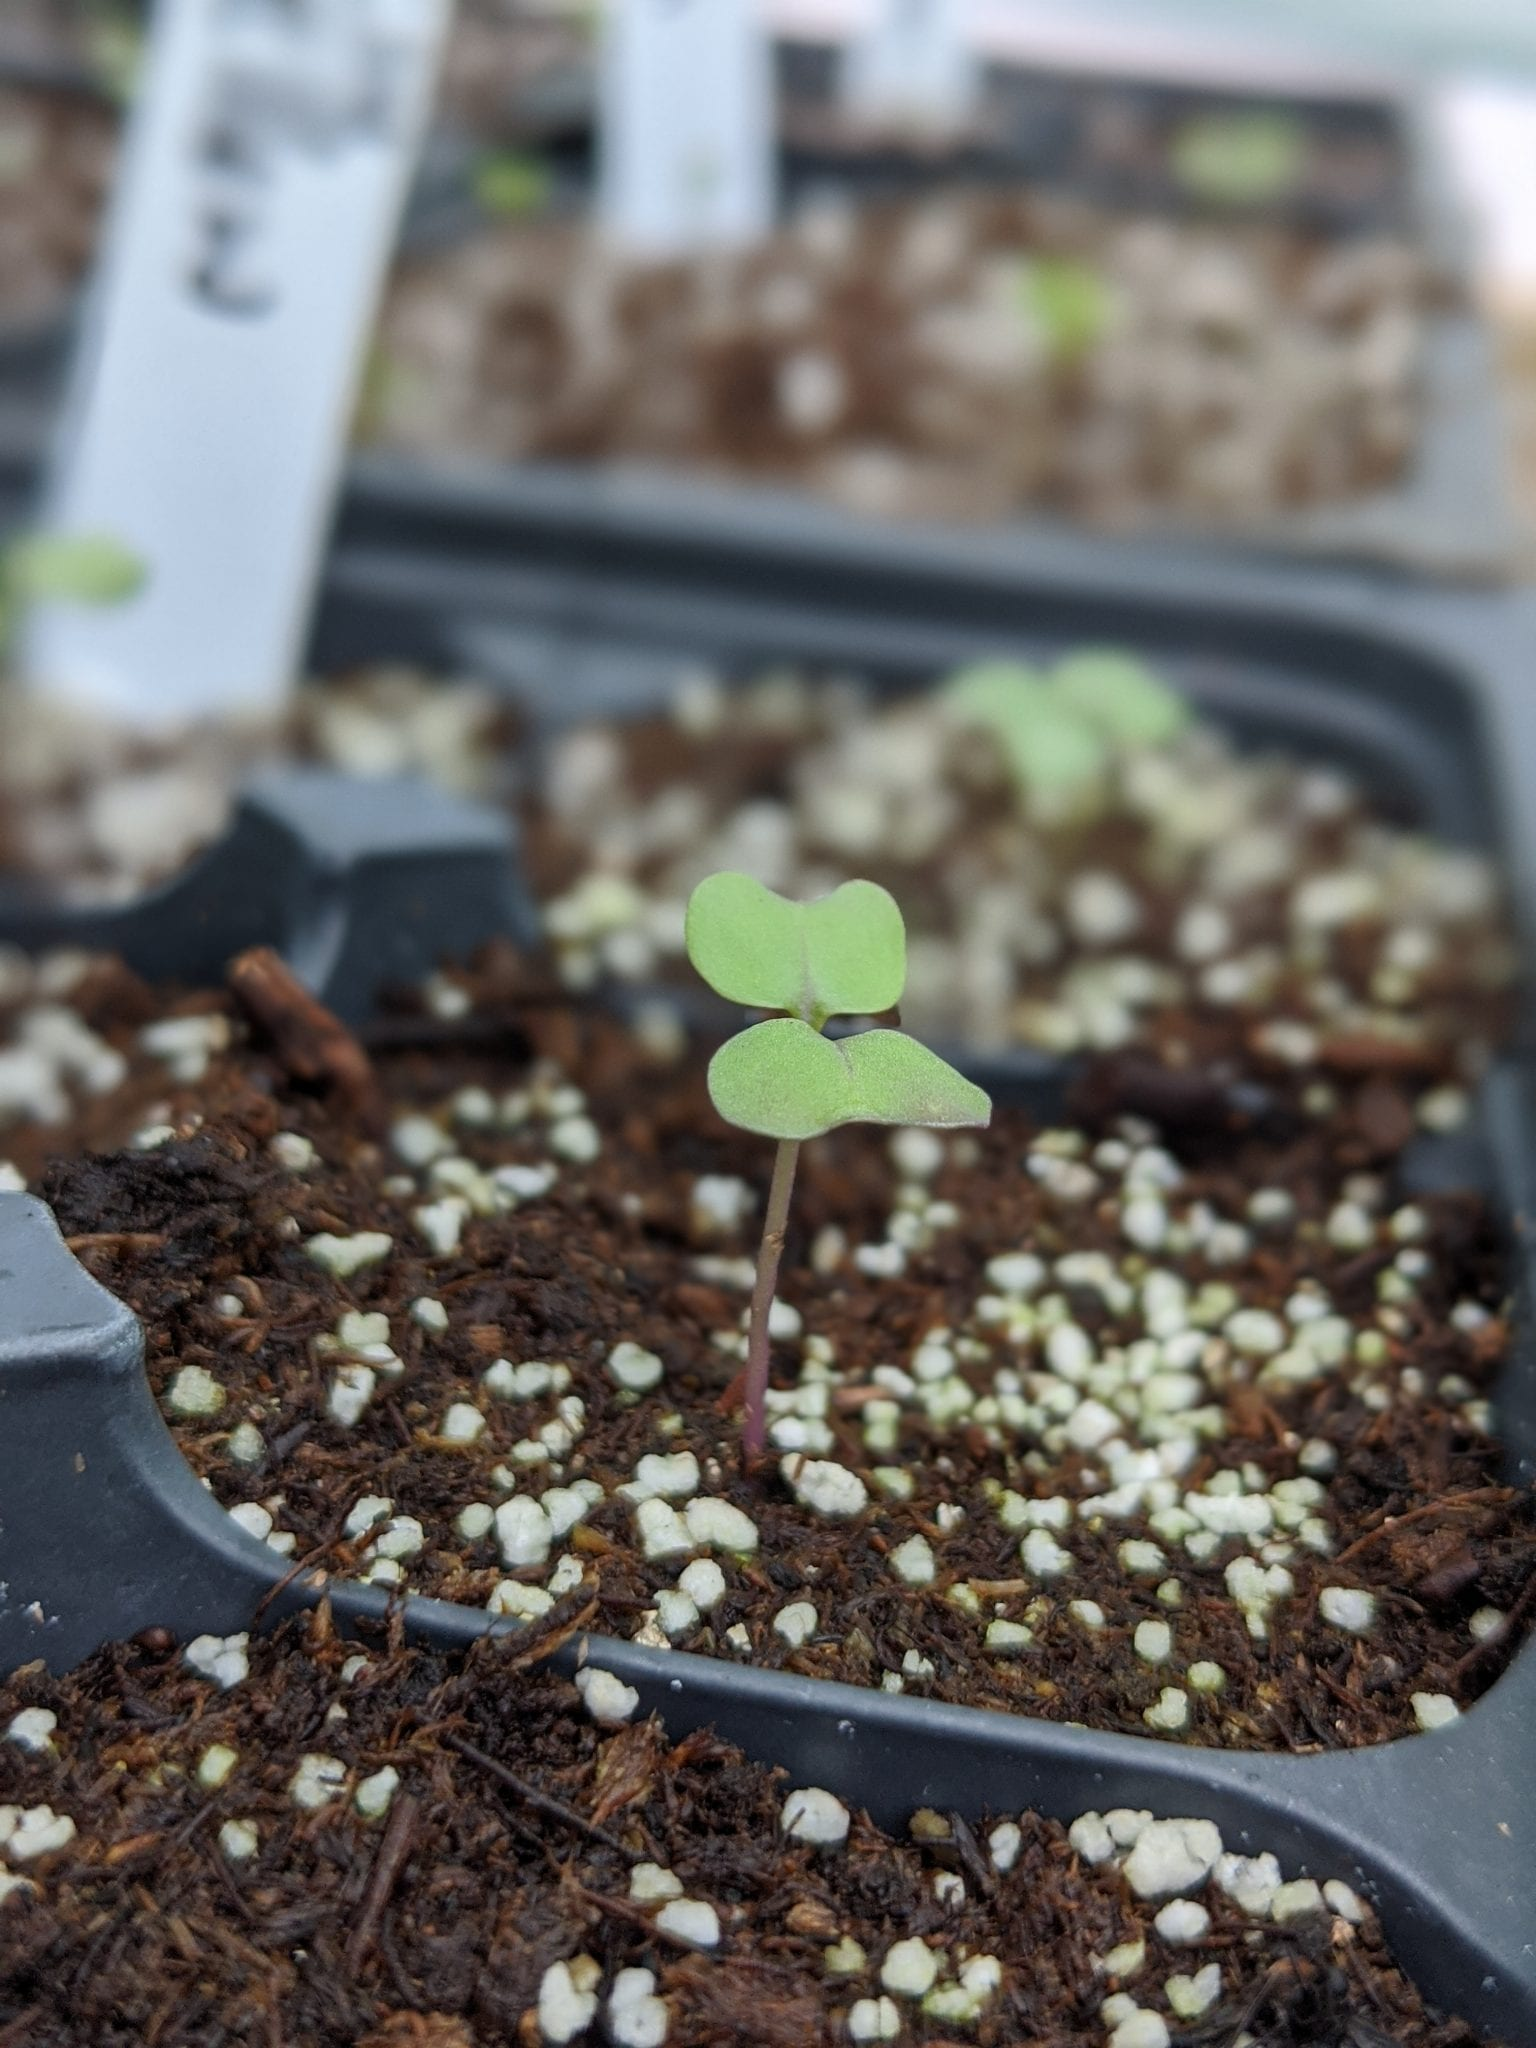 Sowing Seeds and Transplanting Seedlings